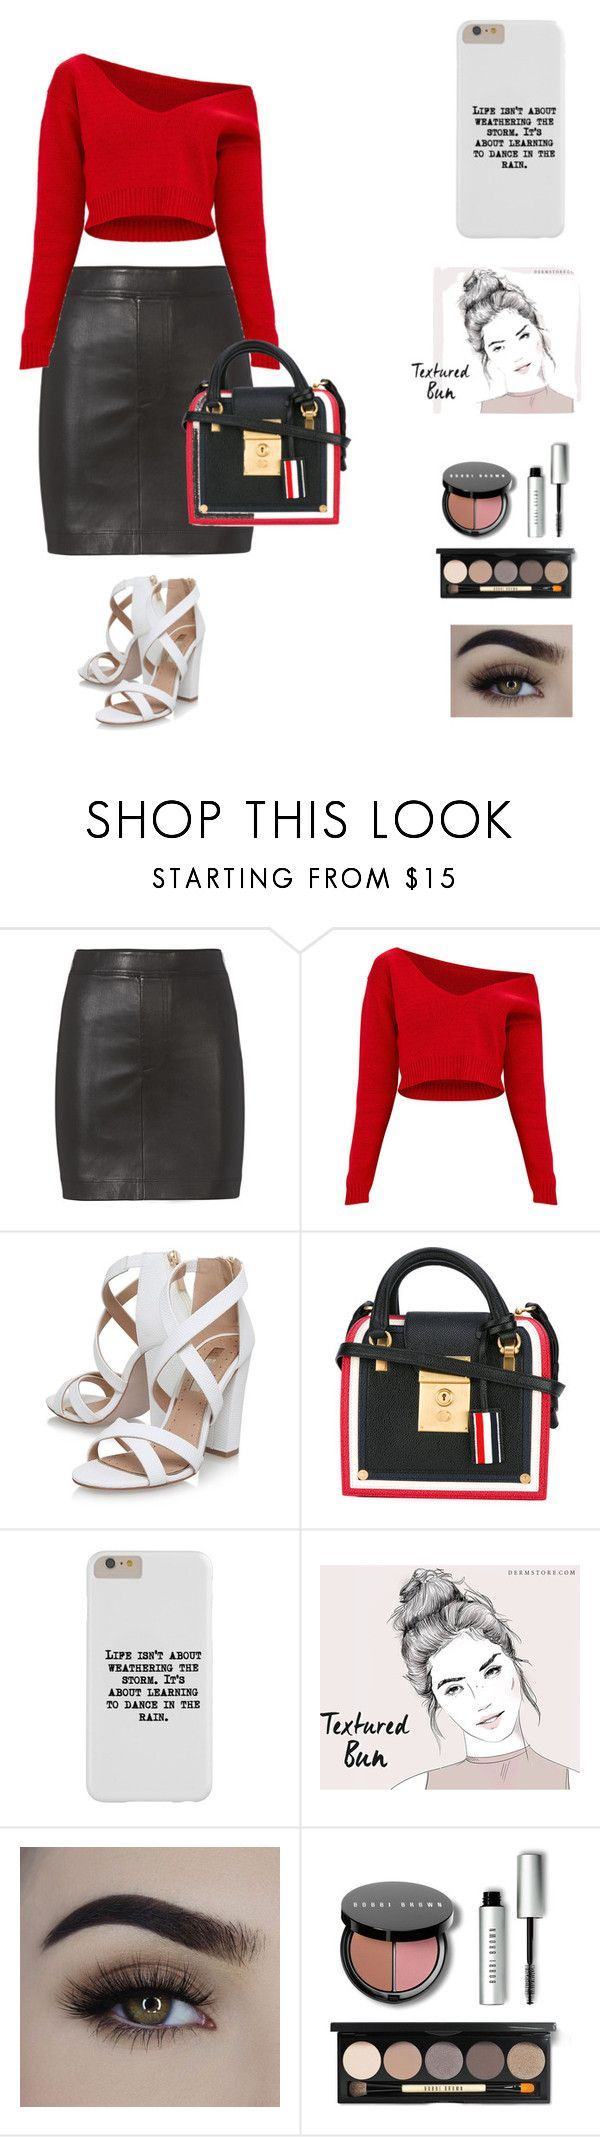 """""""RWB: Red, White, and Black Groove"""" by fashion-stylist-designer ❤ liked on Polyvore featuring Helmut Lang, Miss KG, Thom Browne and Bobbi Brown Cosmetics"""